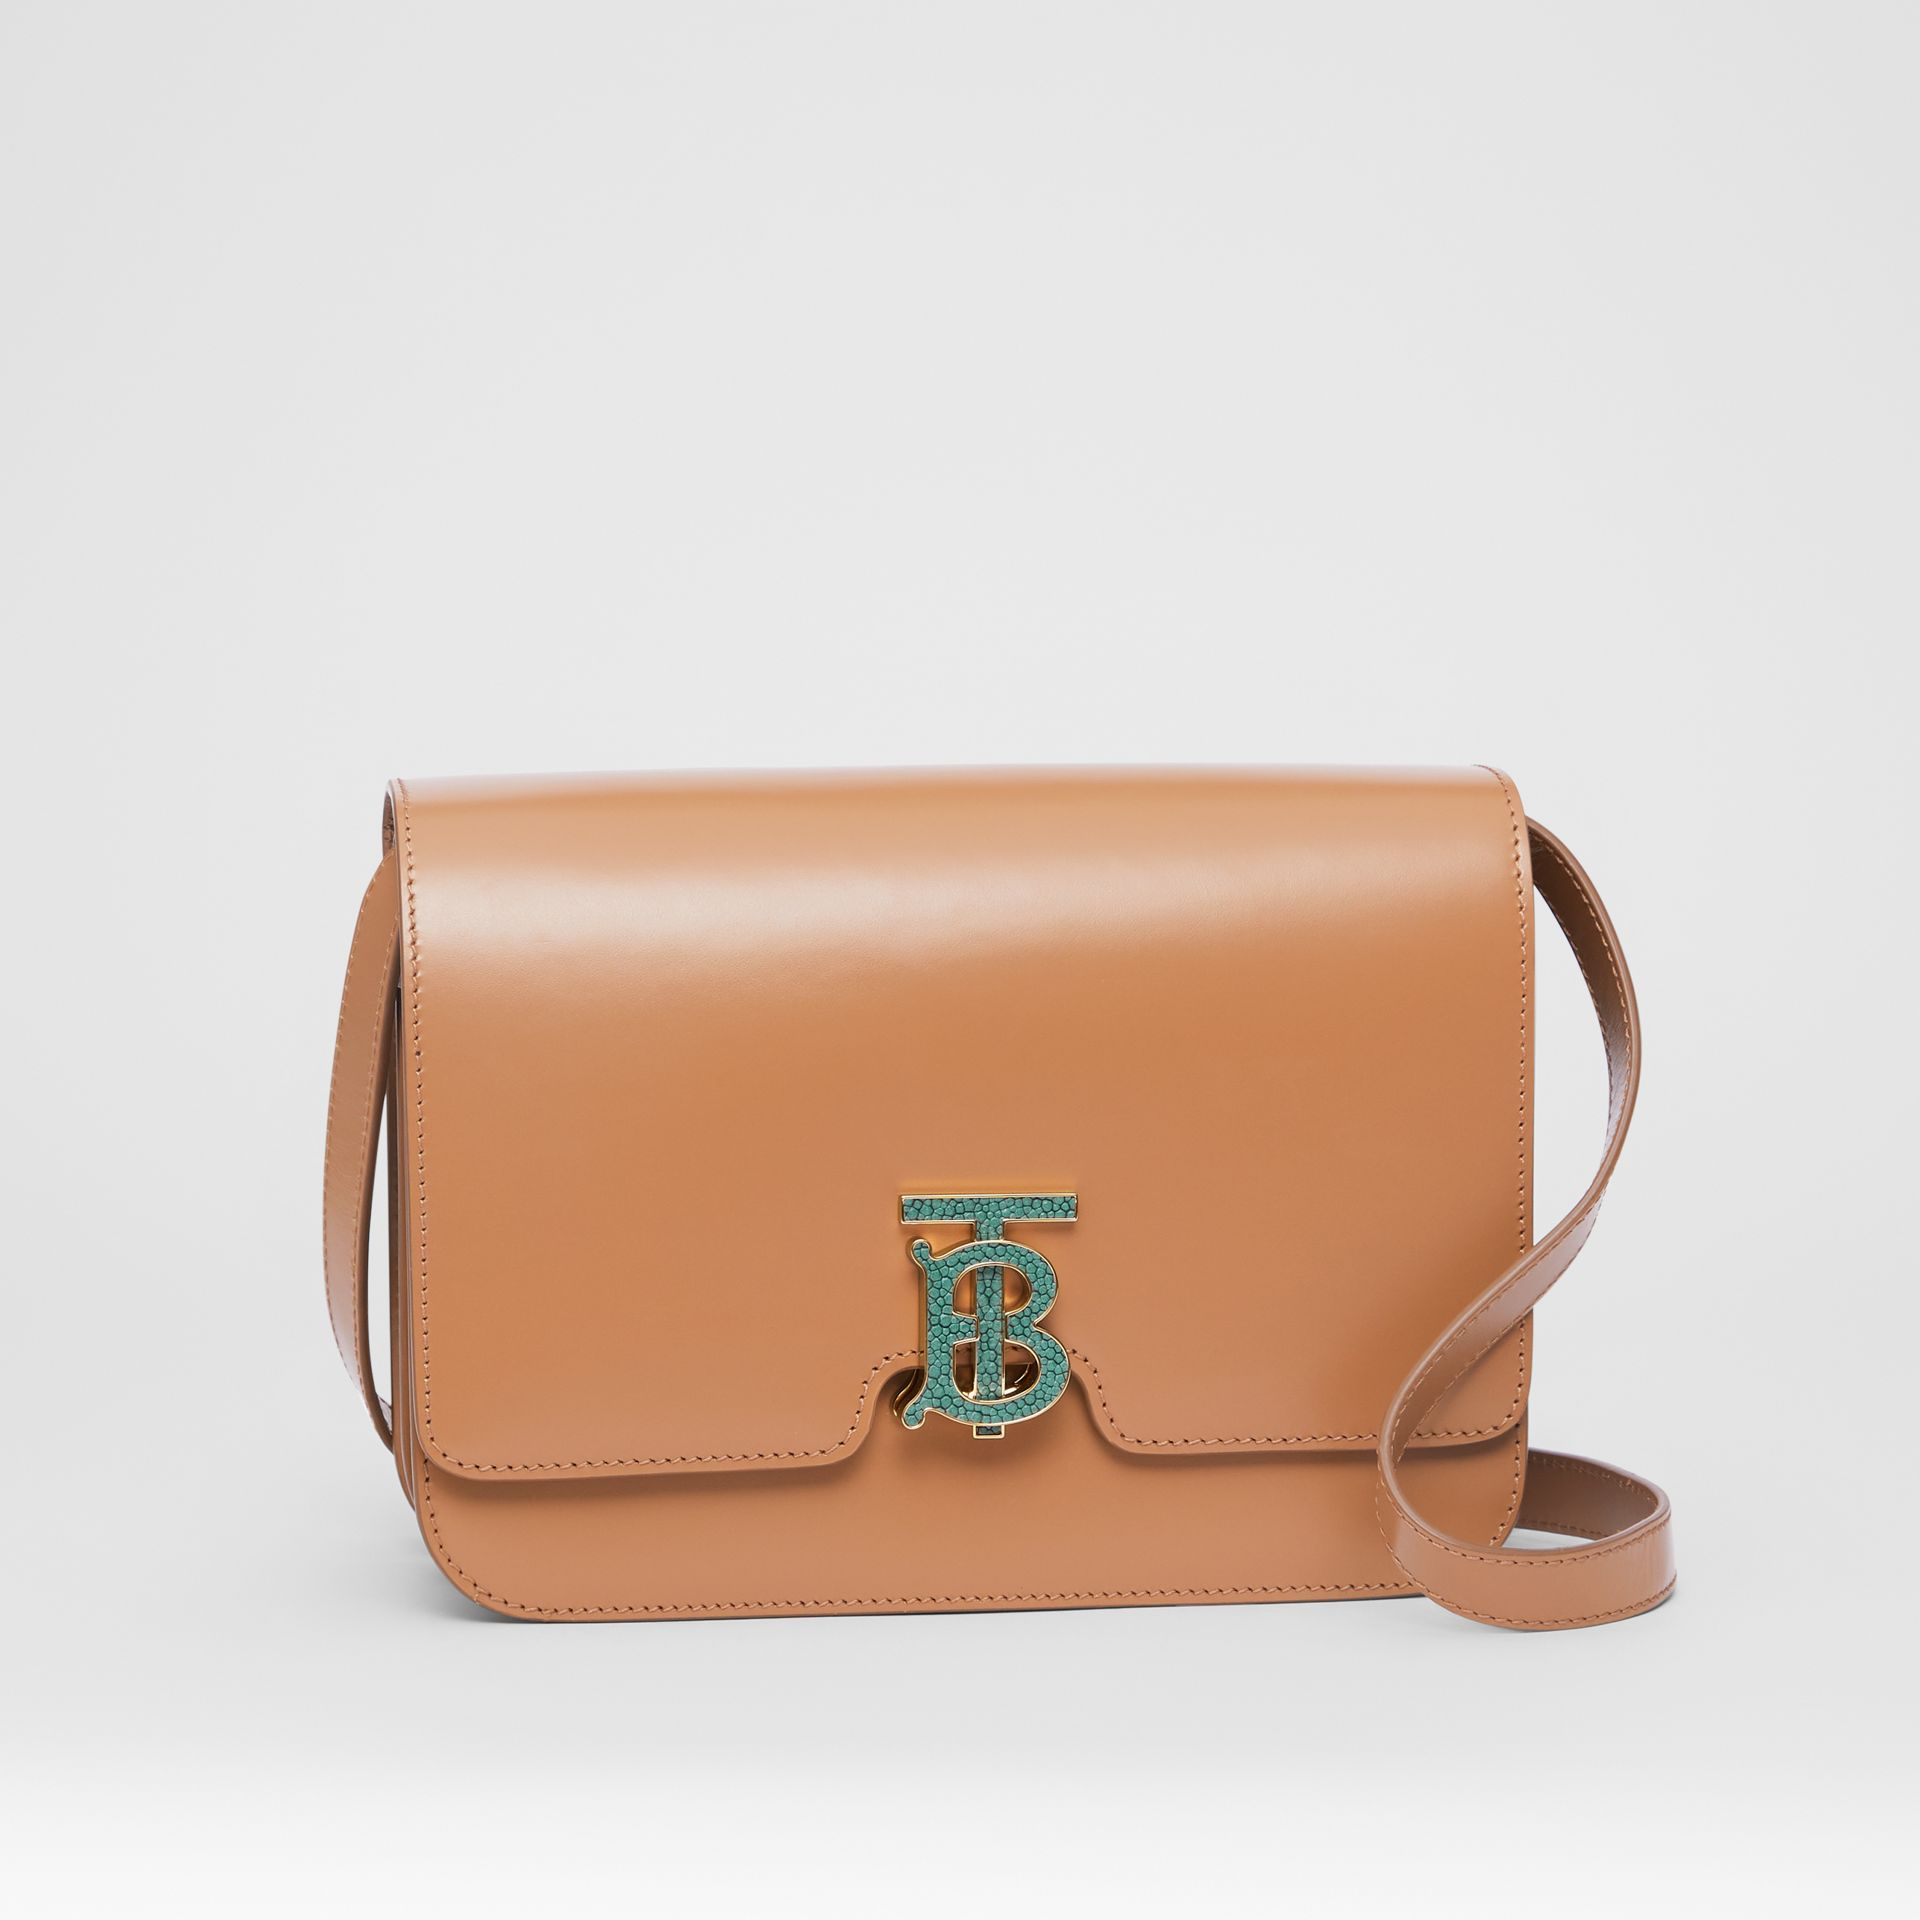 Medium Leather TB Bag in Flaxseed - Women | Burberry United States - gallery image 6